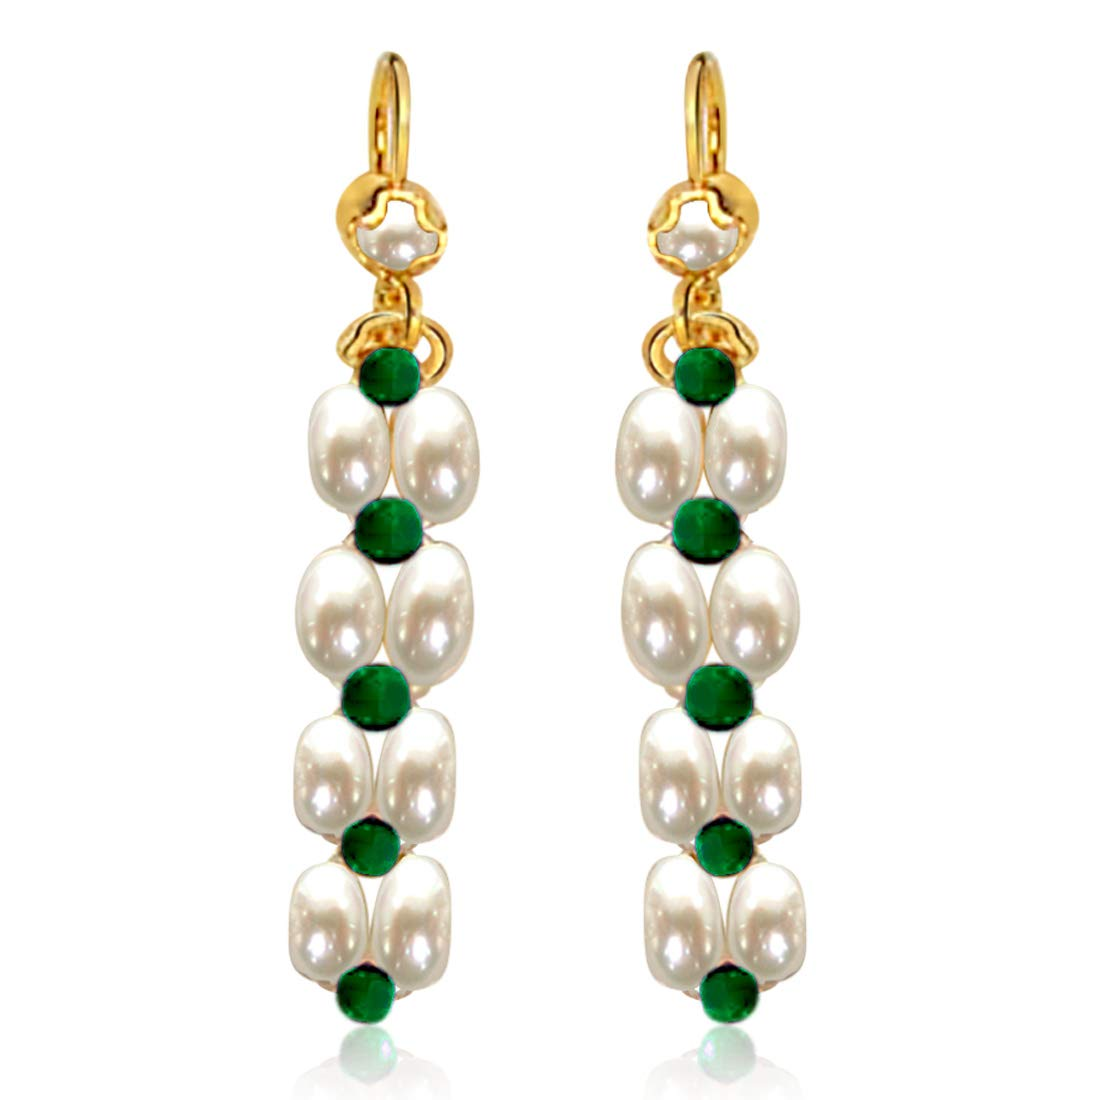 Real Rice Pearl & Green Onyx Beads Hanging Earrings for Women (SE34)